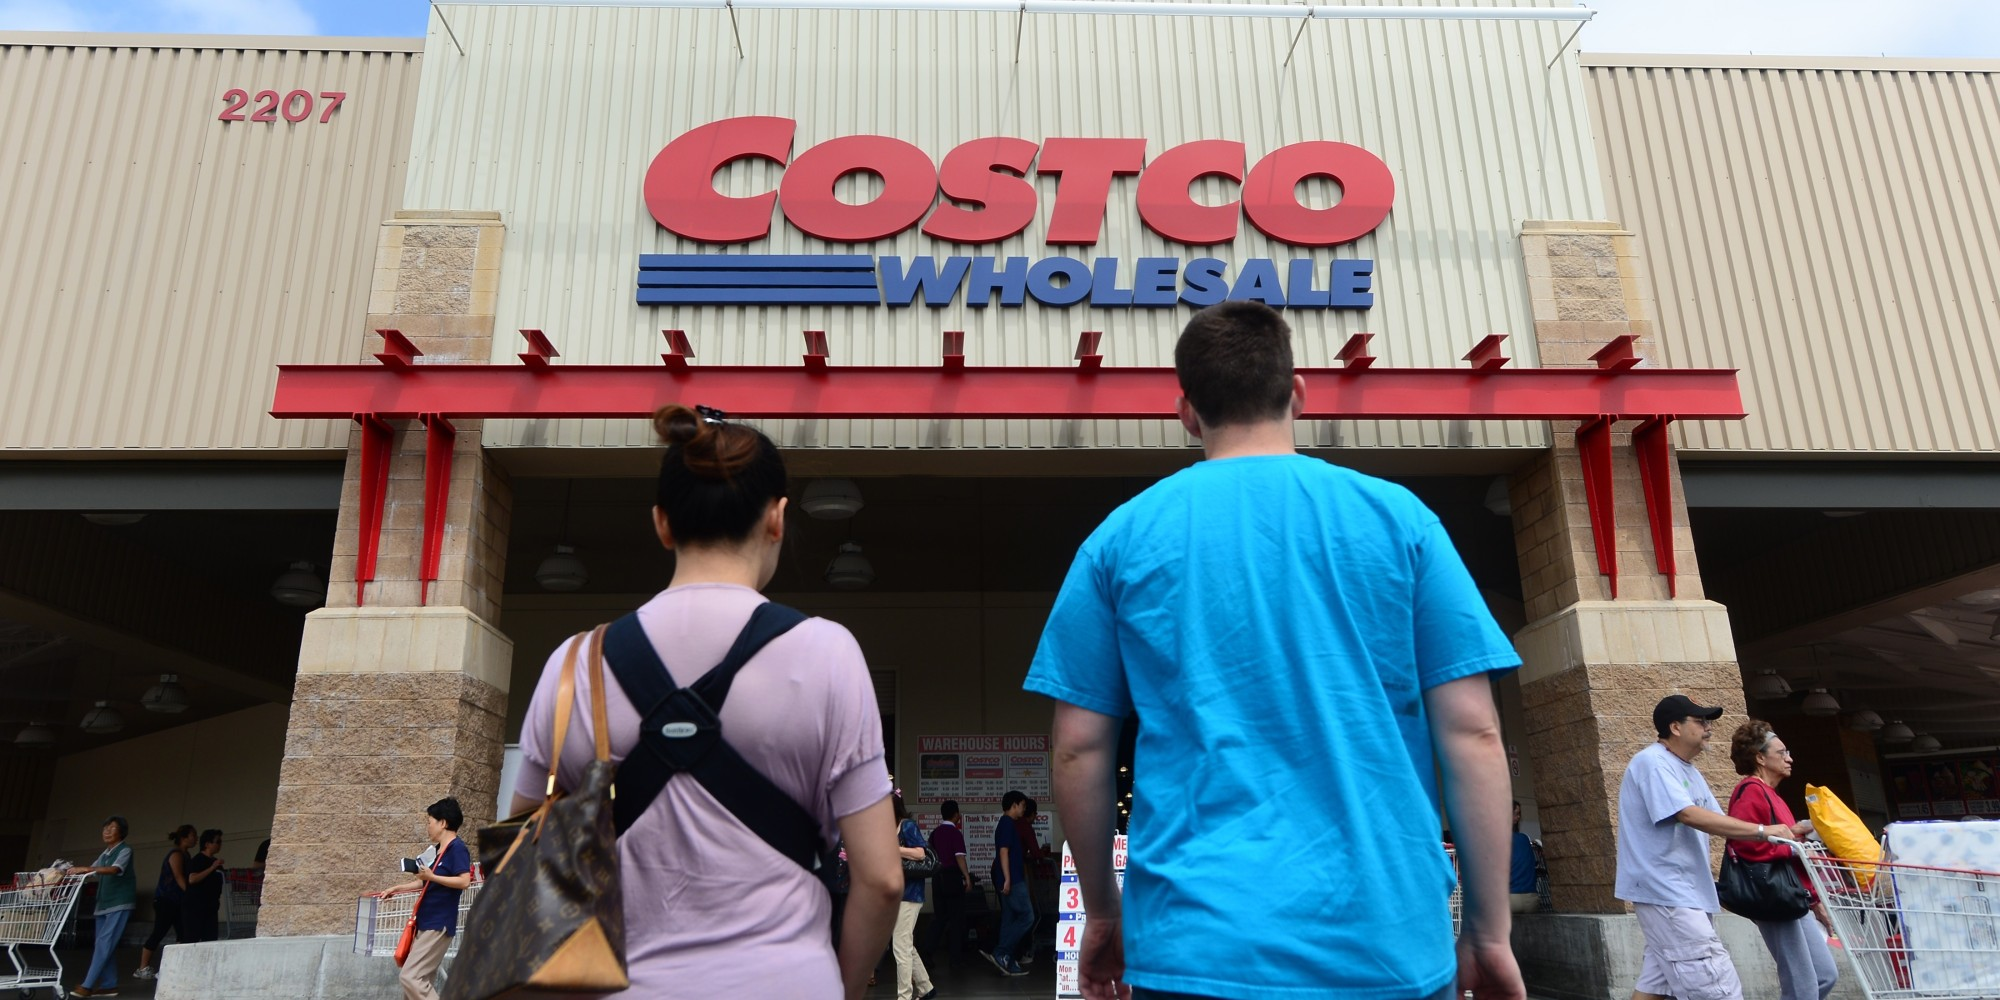 reasons to love costco that have nothing to do shopping 11 reasons to love costco that have nothing to do shopping the huffington post